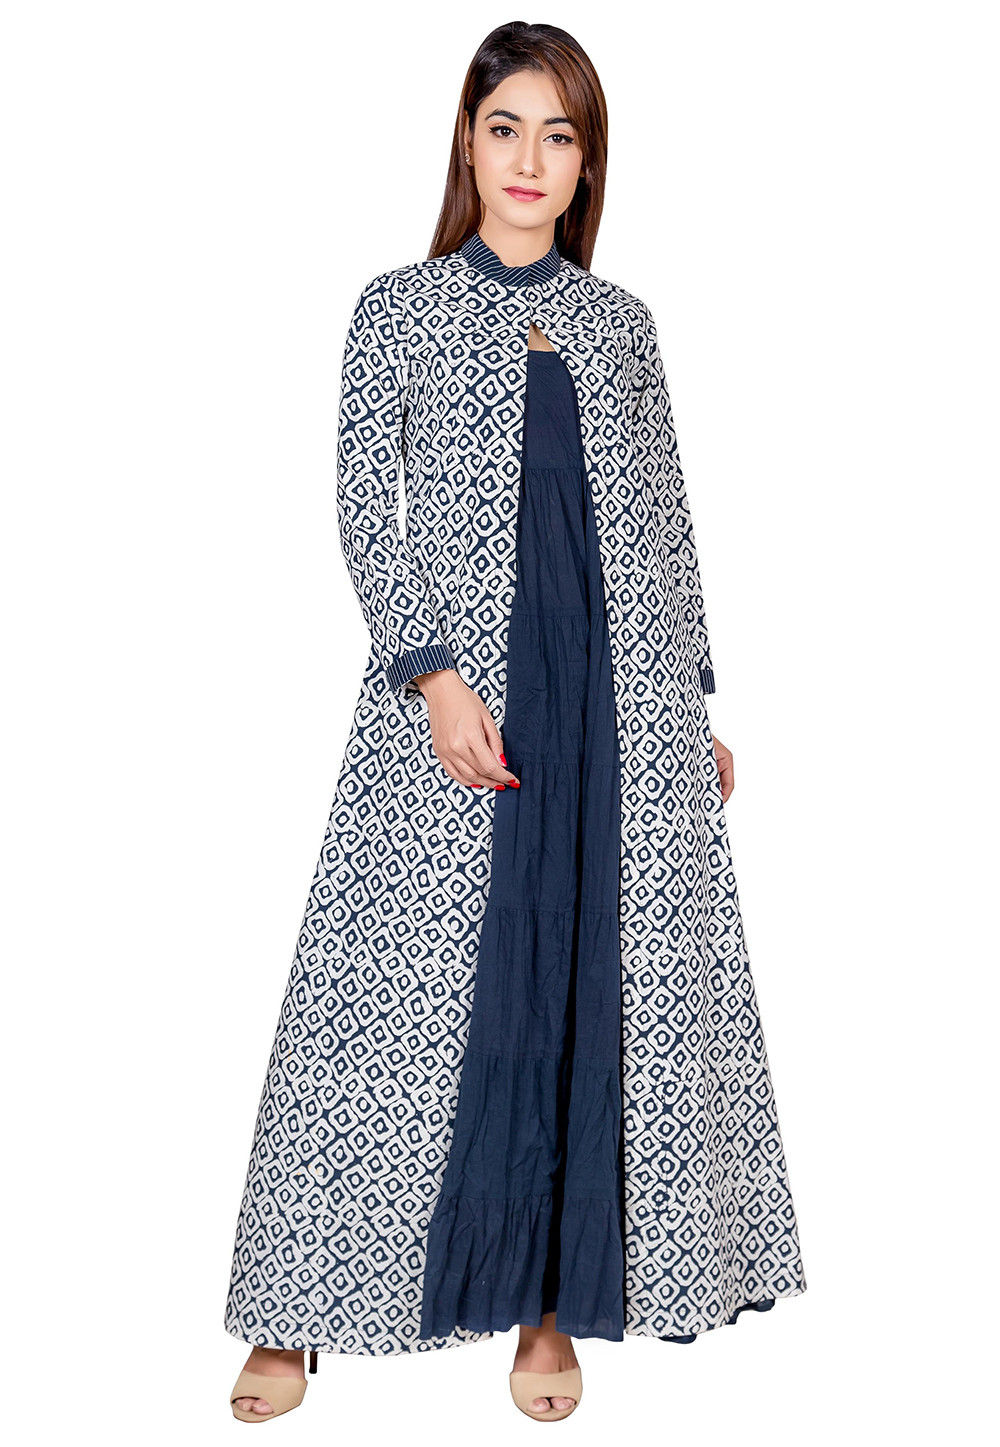 Block Printed Cotton Jacket Style Kurta in Blue and White